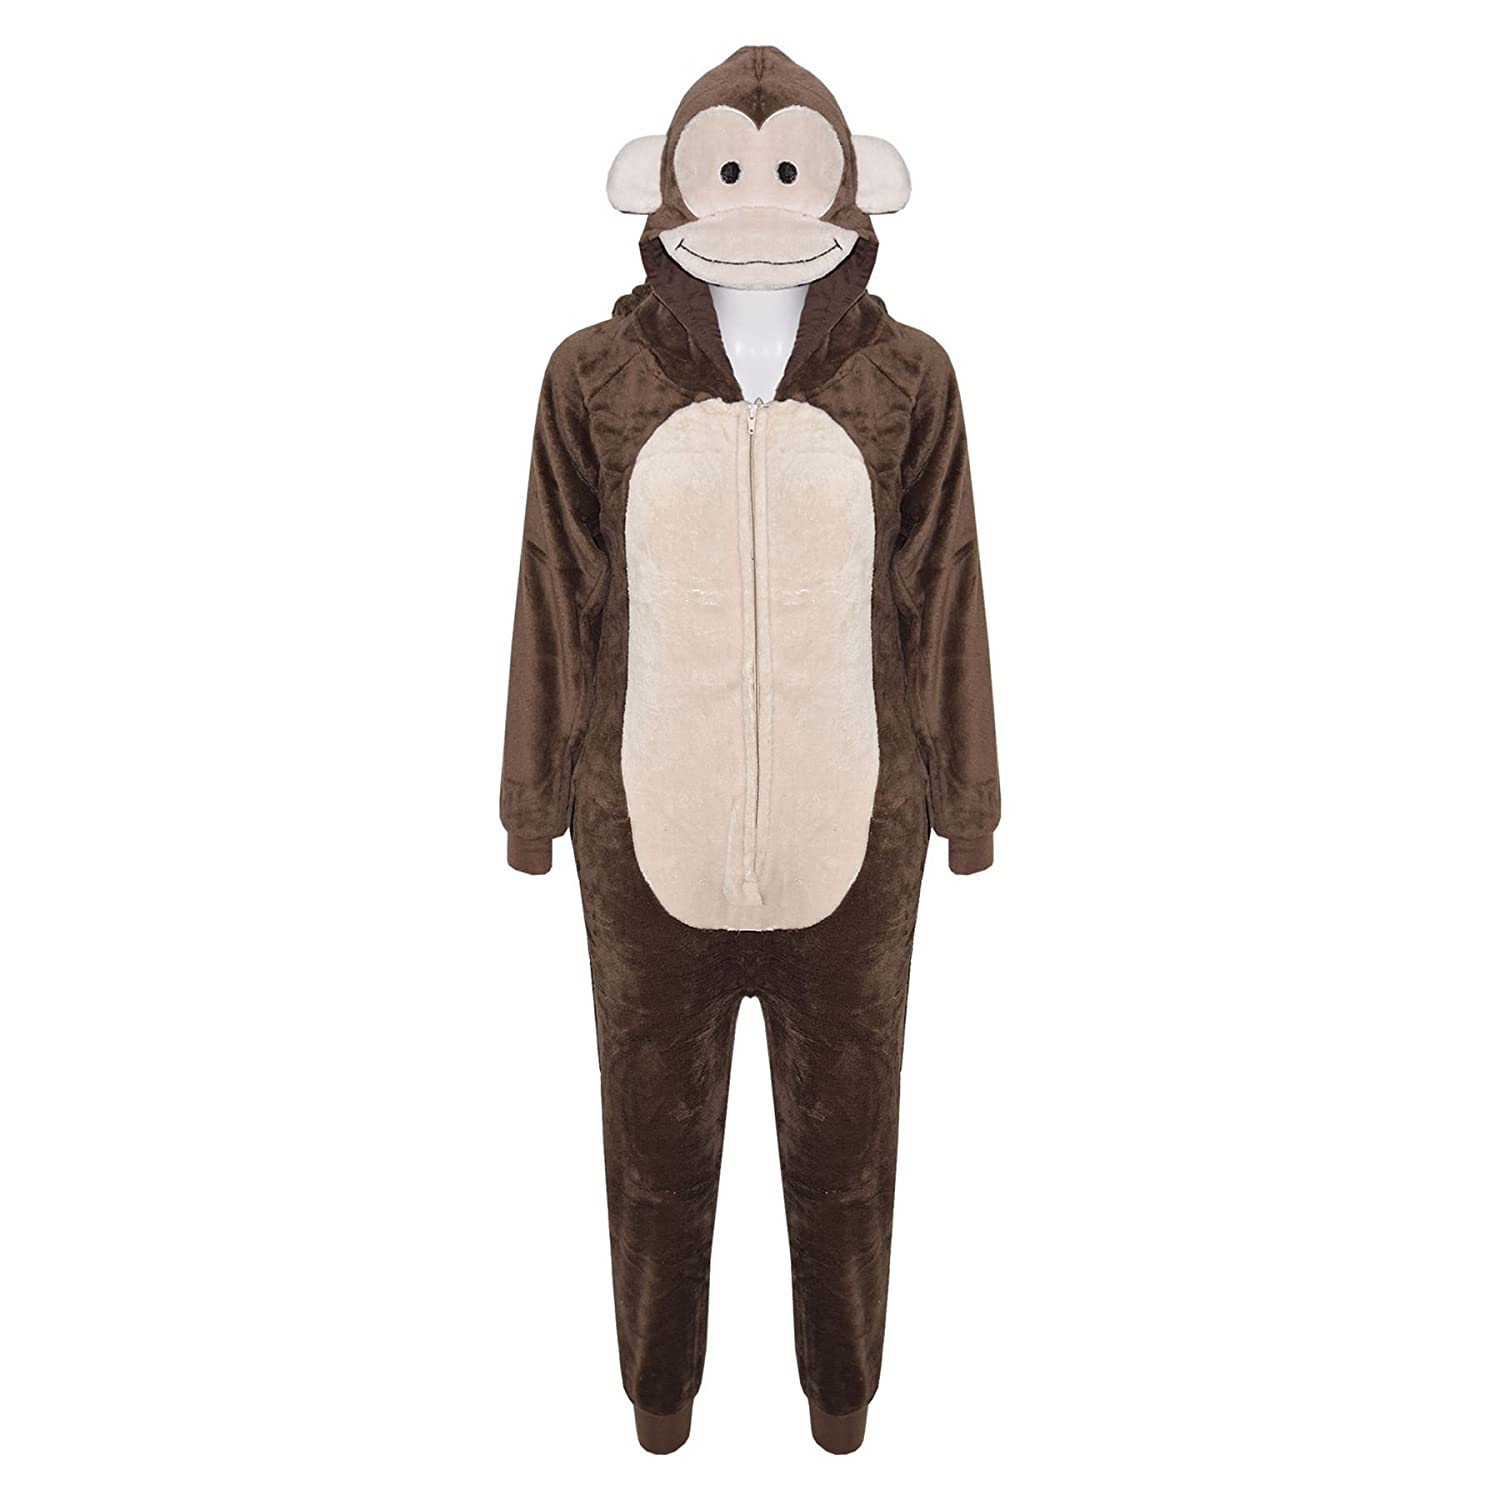 A2Z 4 Kids® Kids Girls Boys Onesie Extra Soft Fluffy Monkey All in One Halloween Costume New Age 7 8 9 10 11 12 13 14 Years